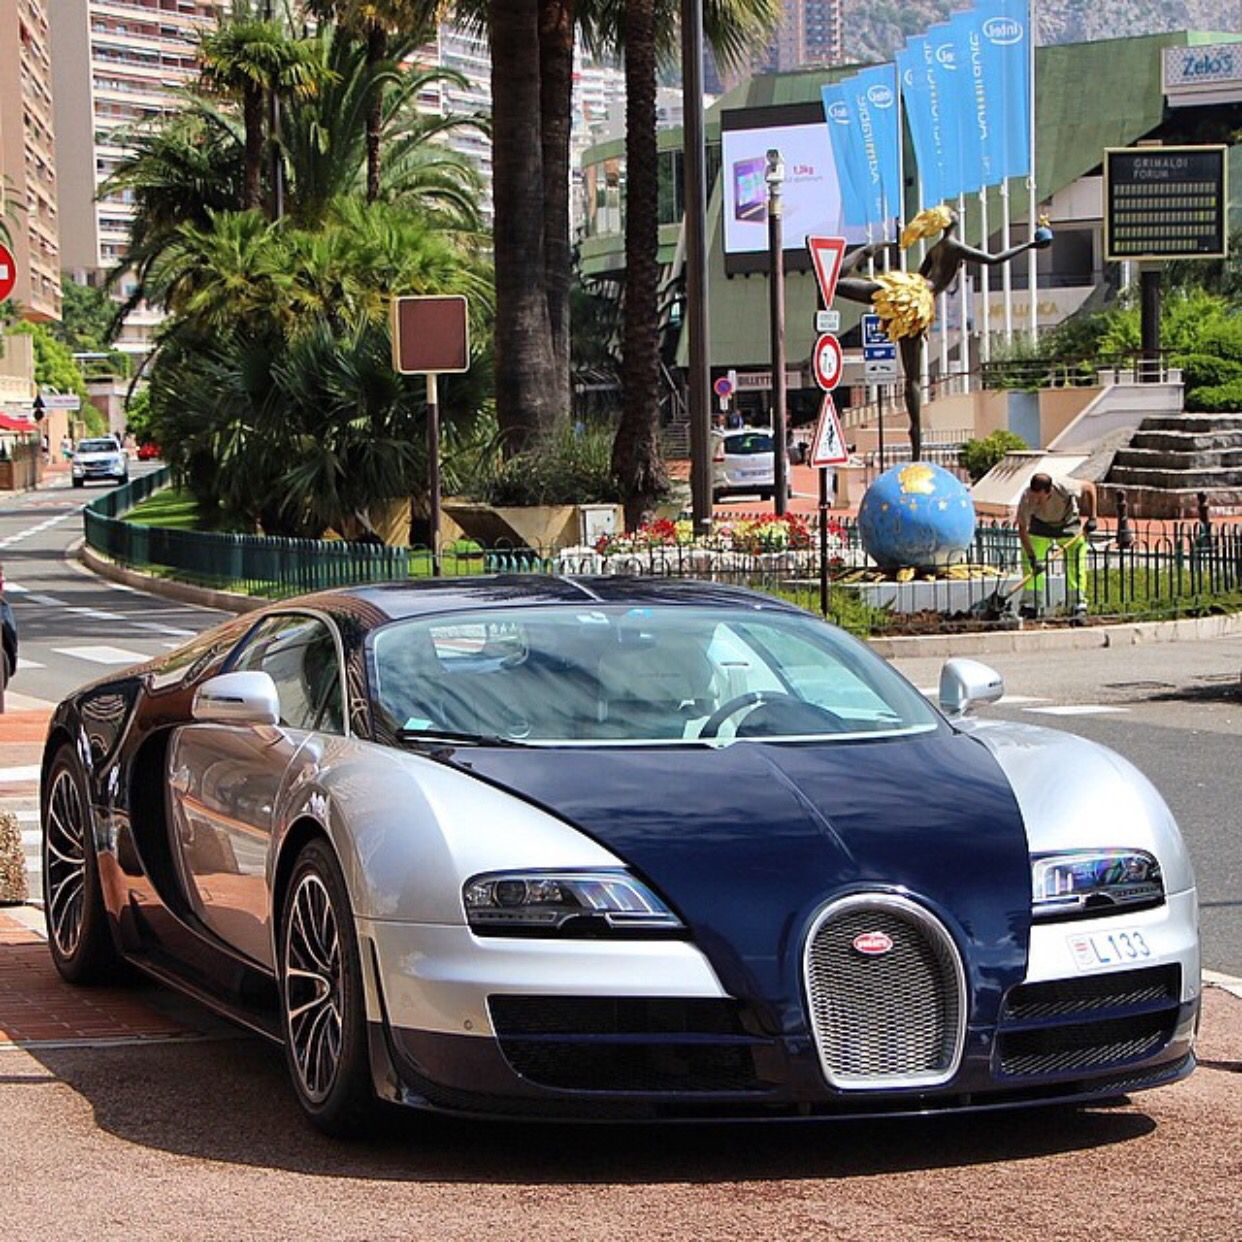 Bugatti Veyron Super Sport Painted In Silver & Navy Blue